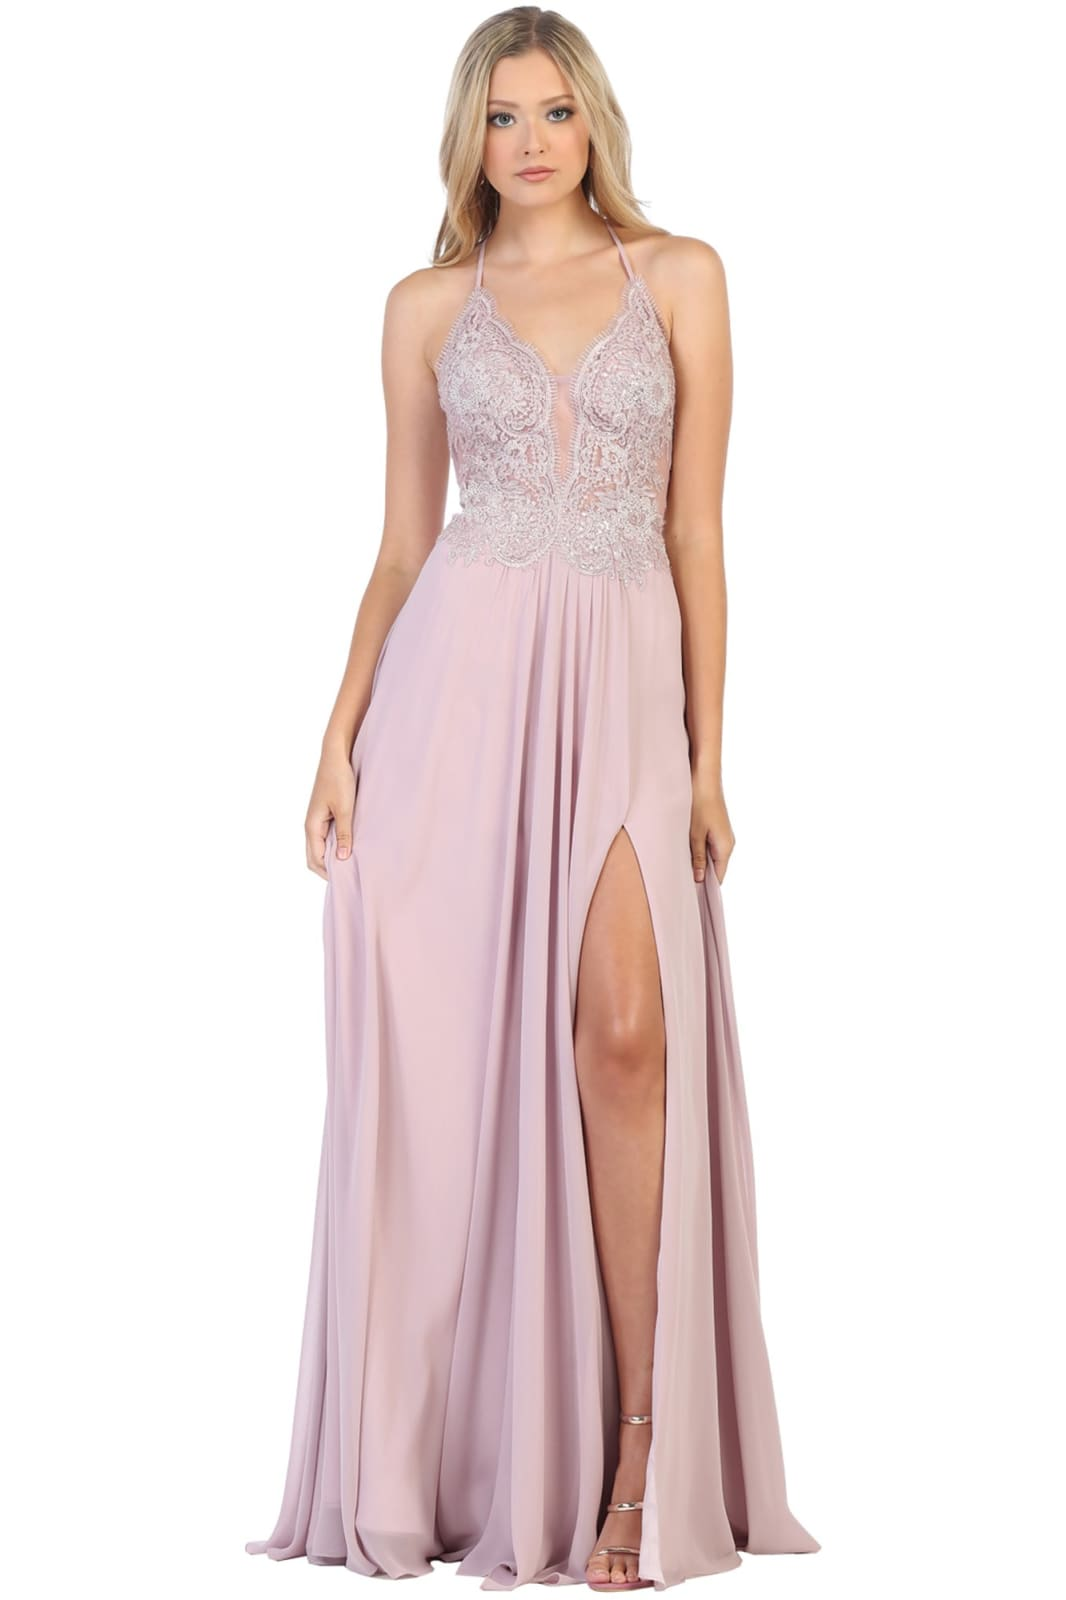 Simple Long Strappy Dress - LA7781 - MAUVE / 2